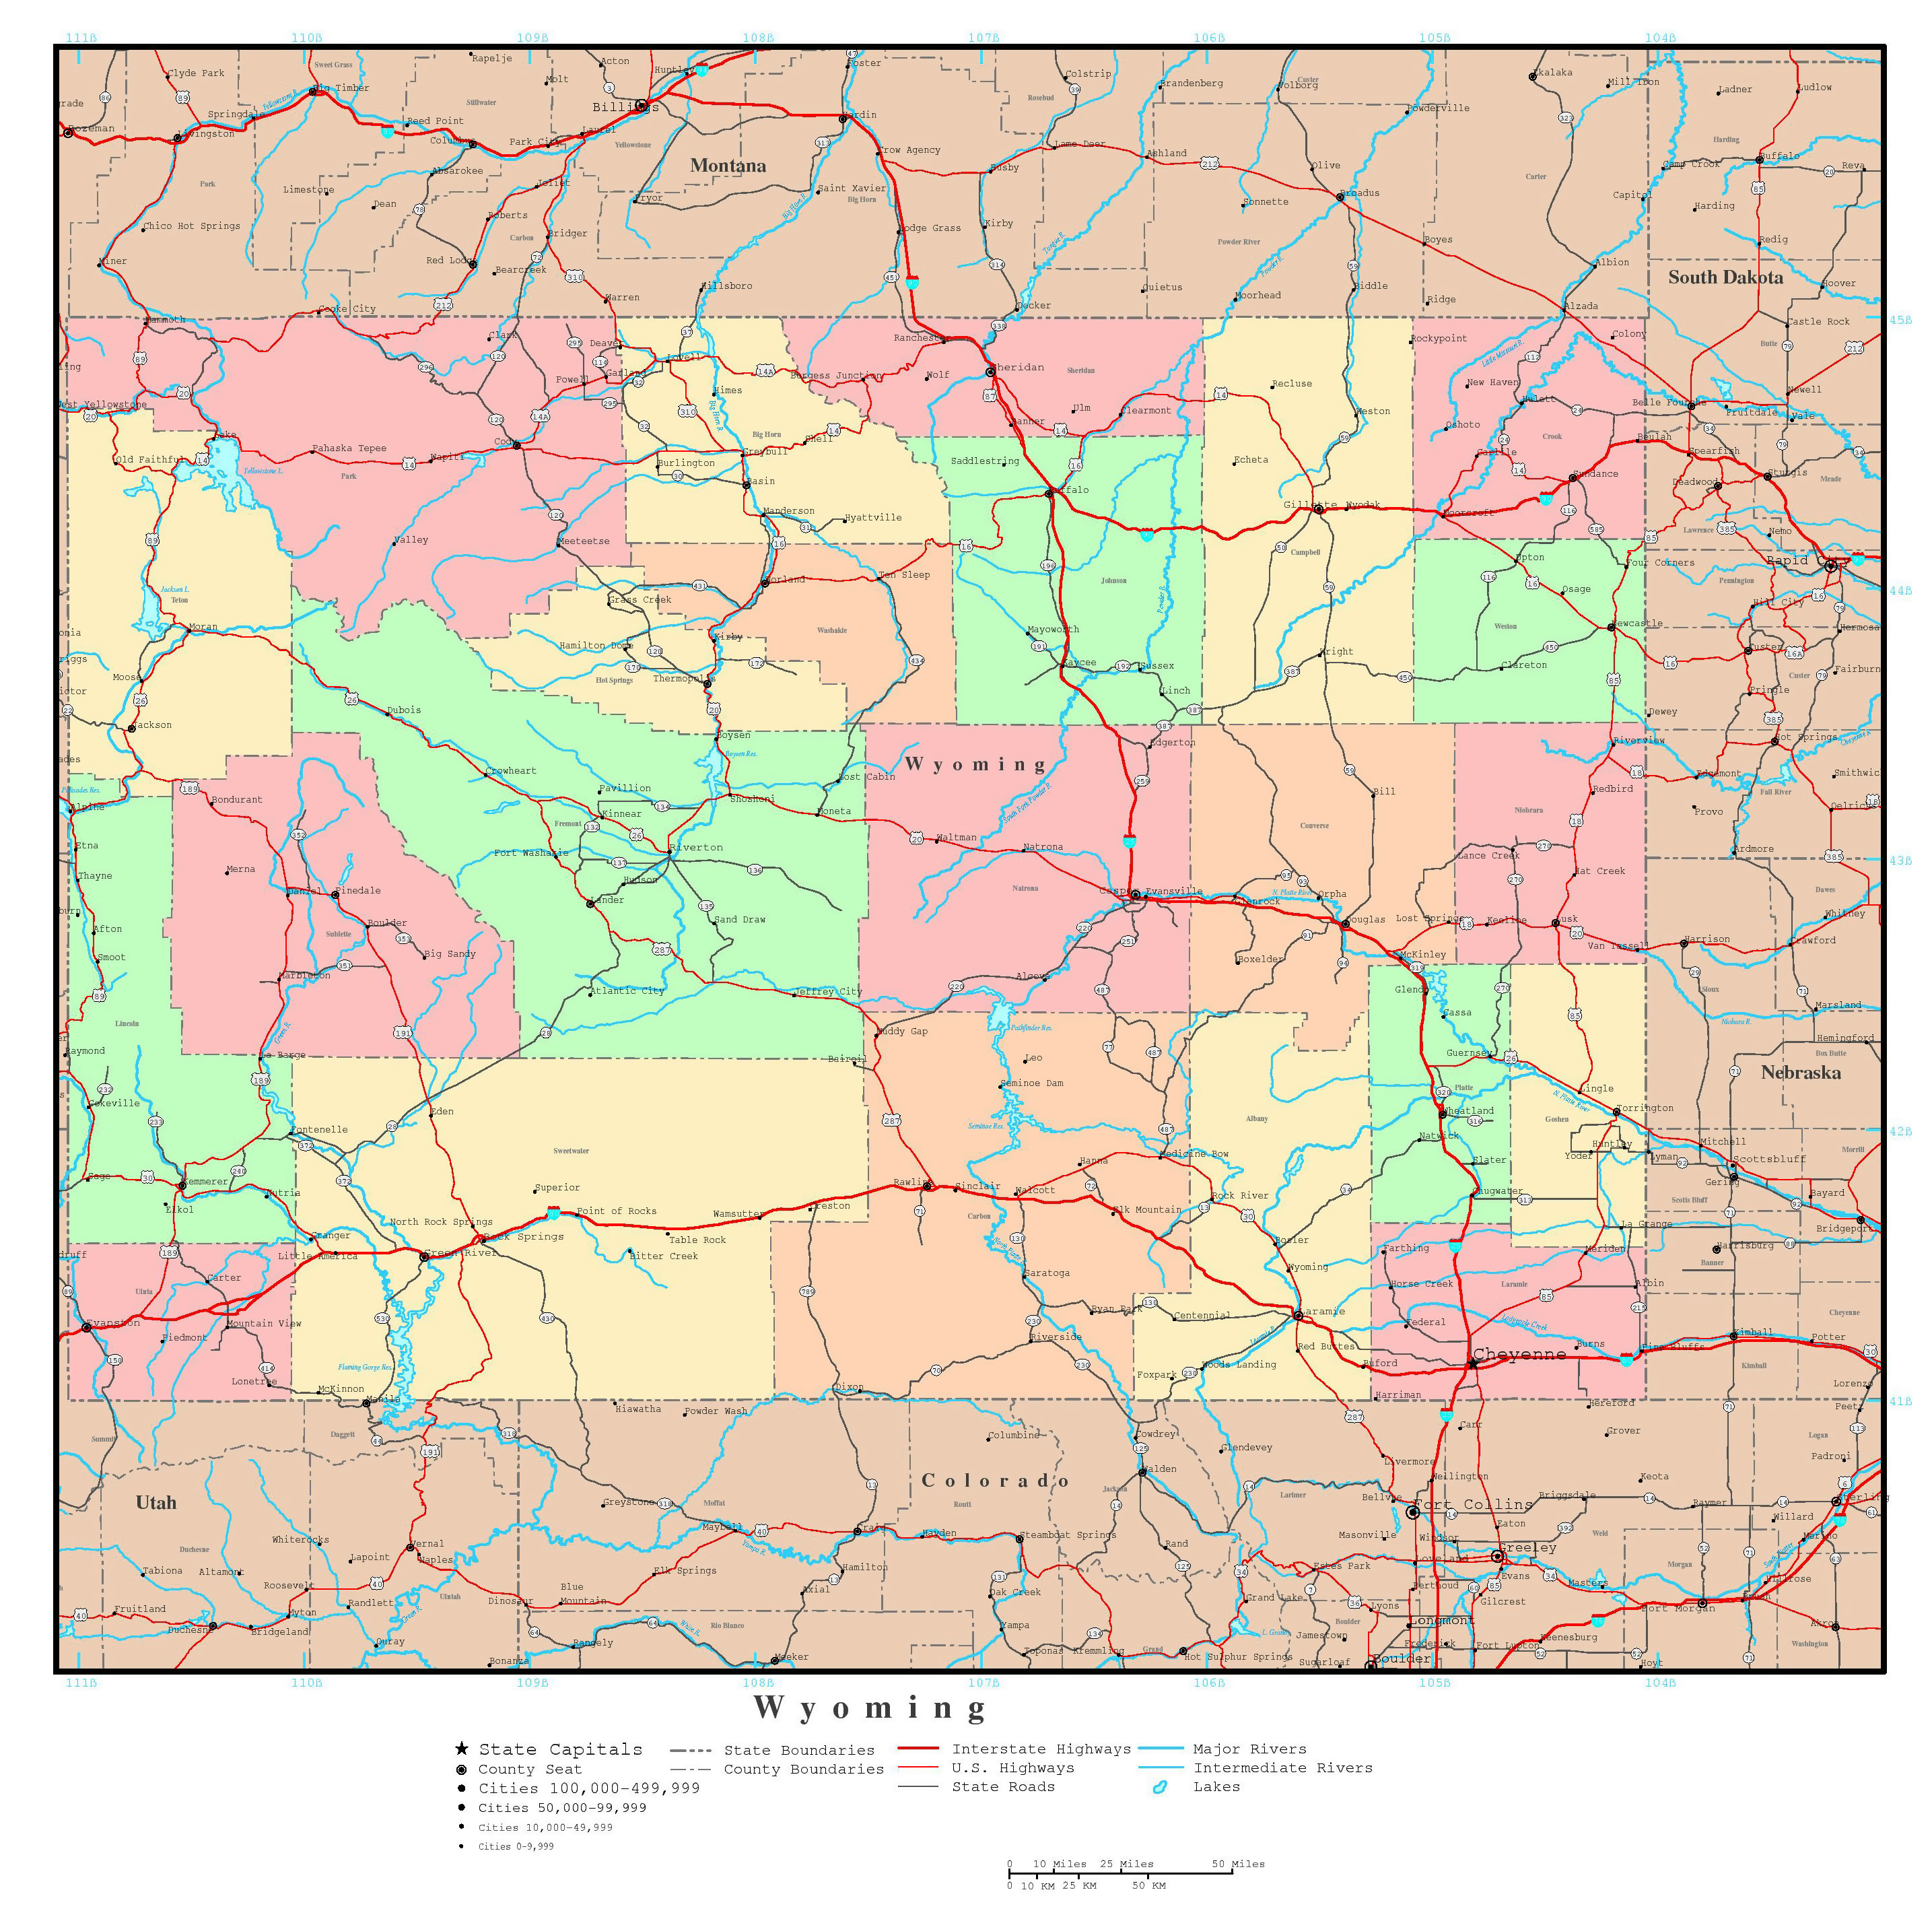 Large Detailed Administrative Map Of Wyoming State With Roads - Wyoming map with cities